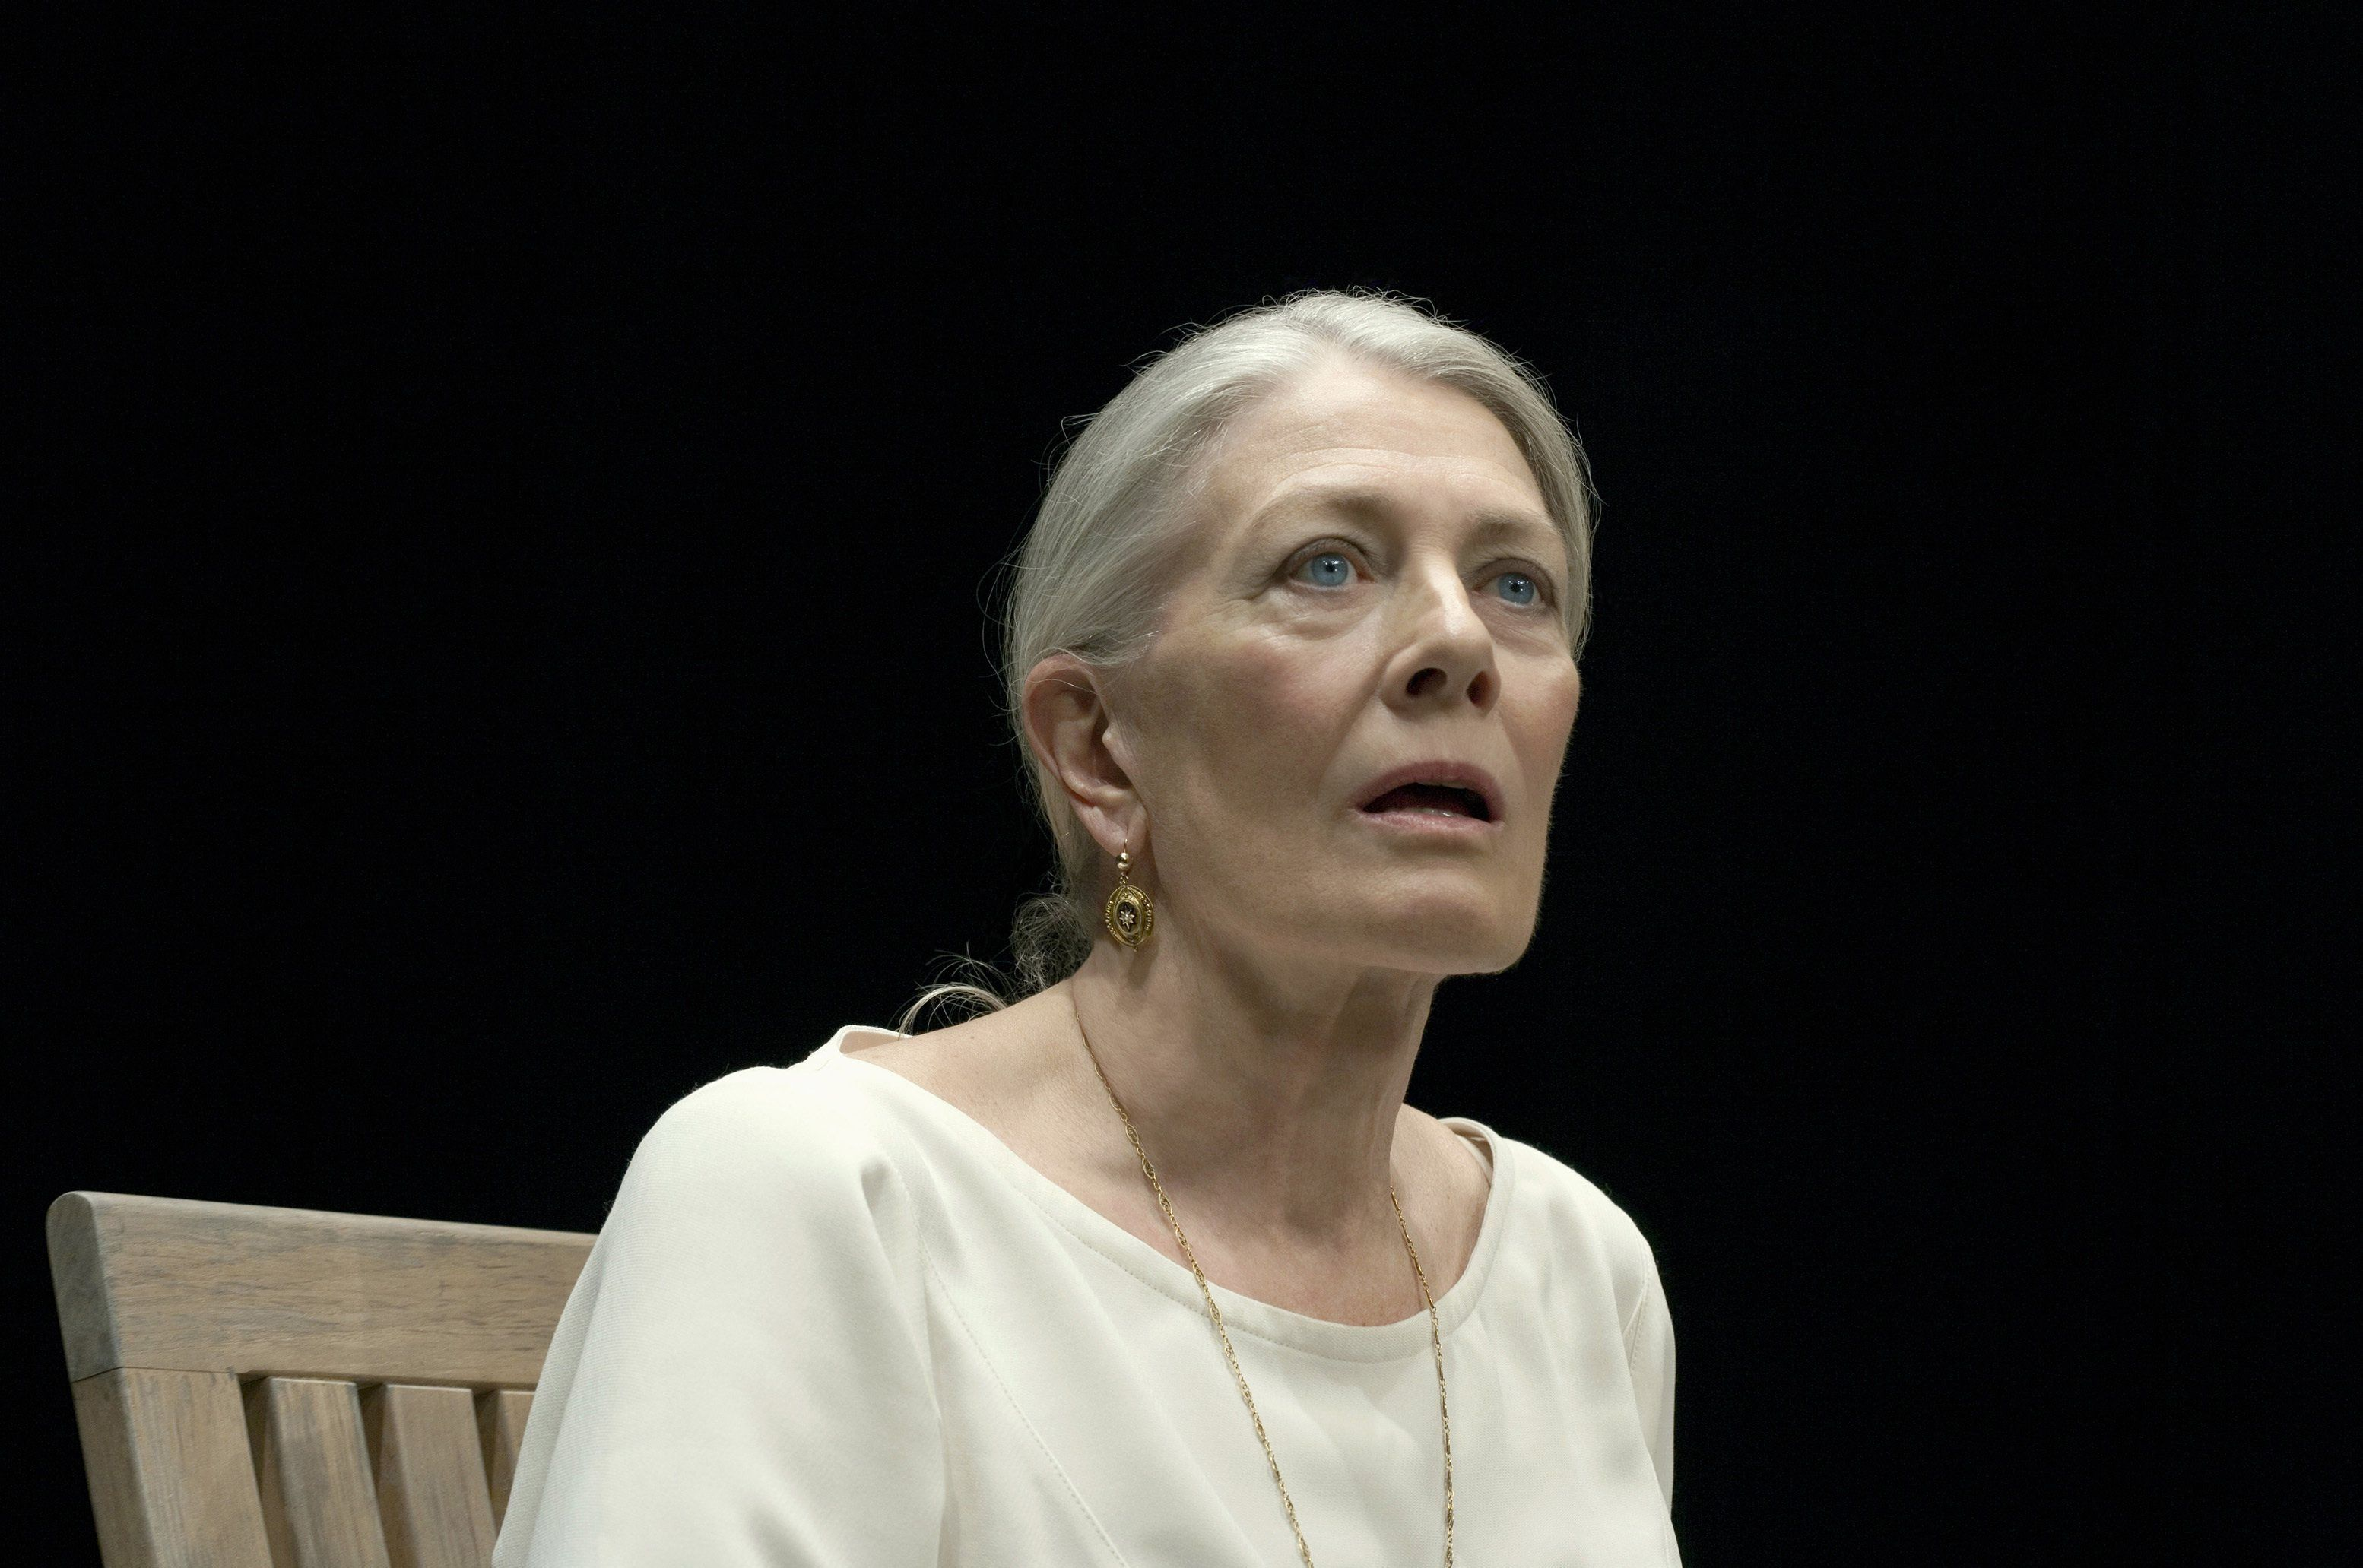 photo Vanessa Redgrave (born 1937)